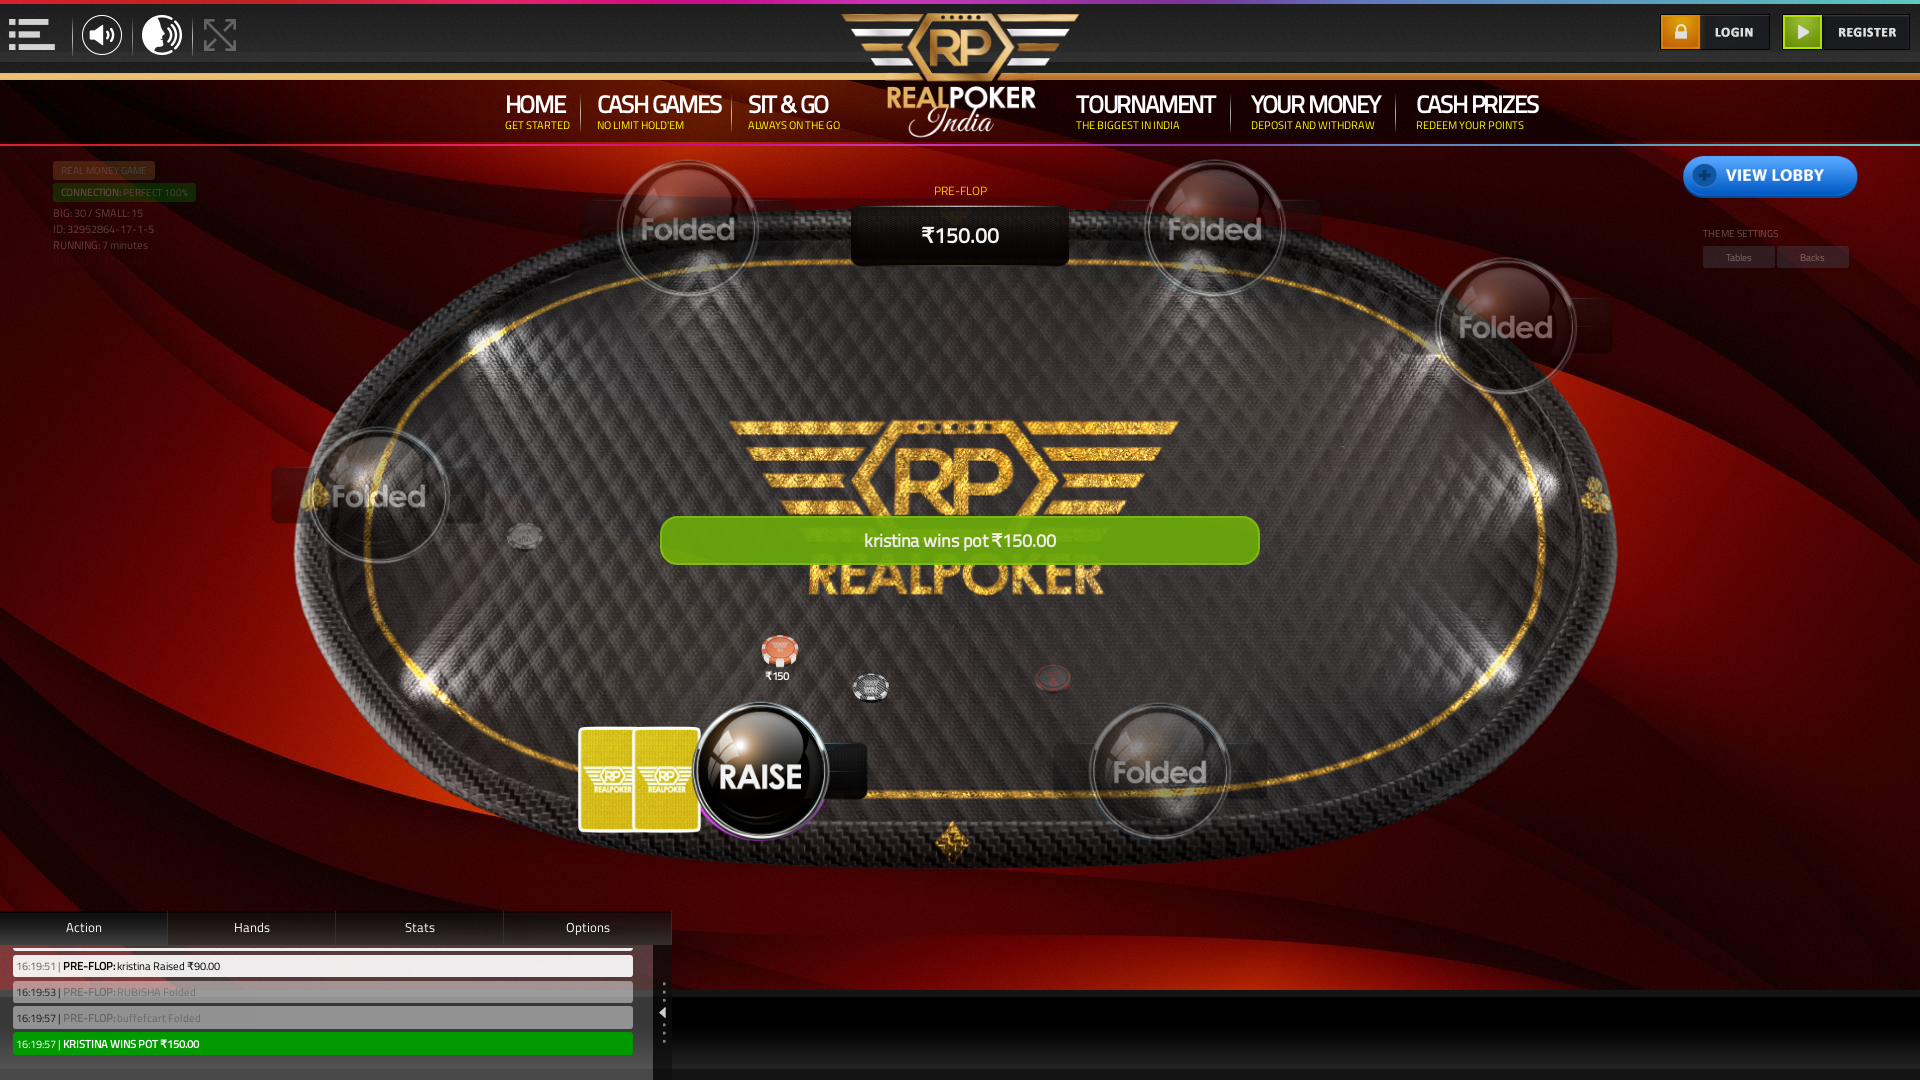 Nagarbhavi, Bangalore Poker Website from November